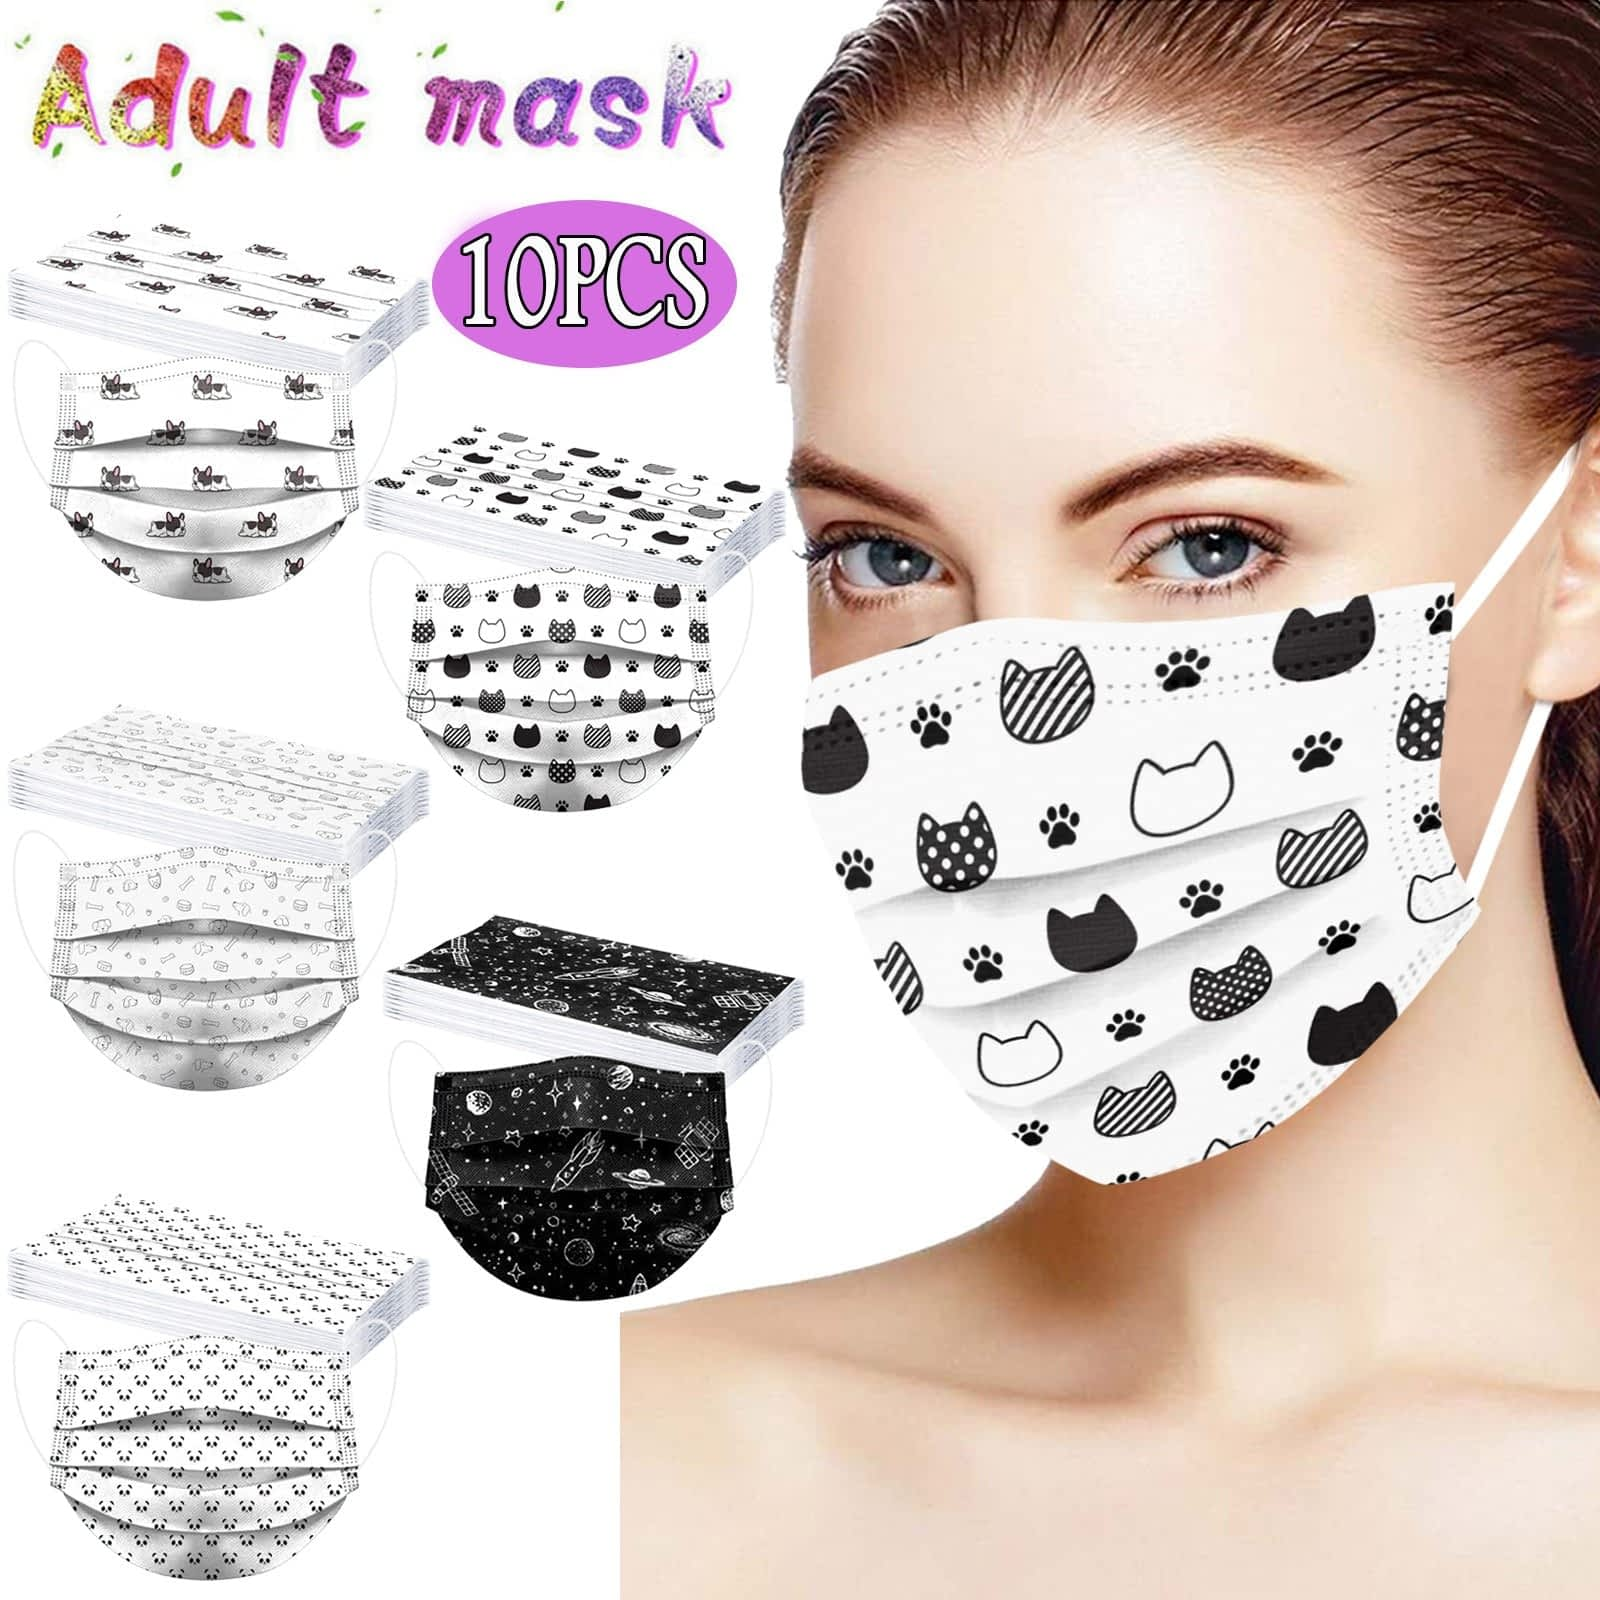 Mascarillas-10-100pcs-Disposable-Face-Mask-Adult-Decoarion-For-Face-Cartoon-Printed-Mask-Personal-Safey-3ply.jpg